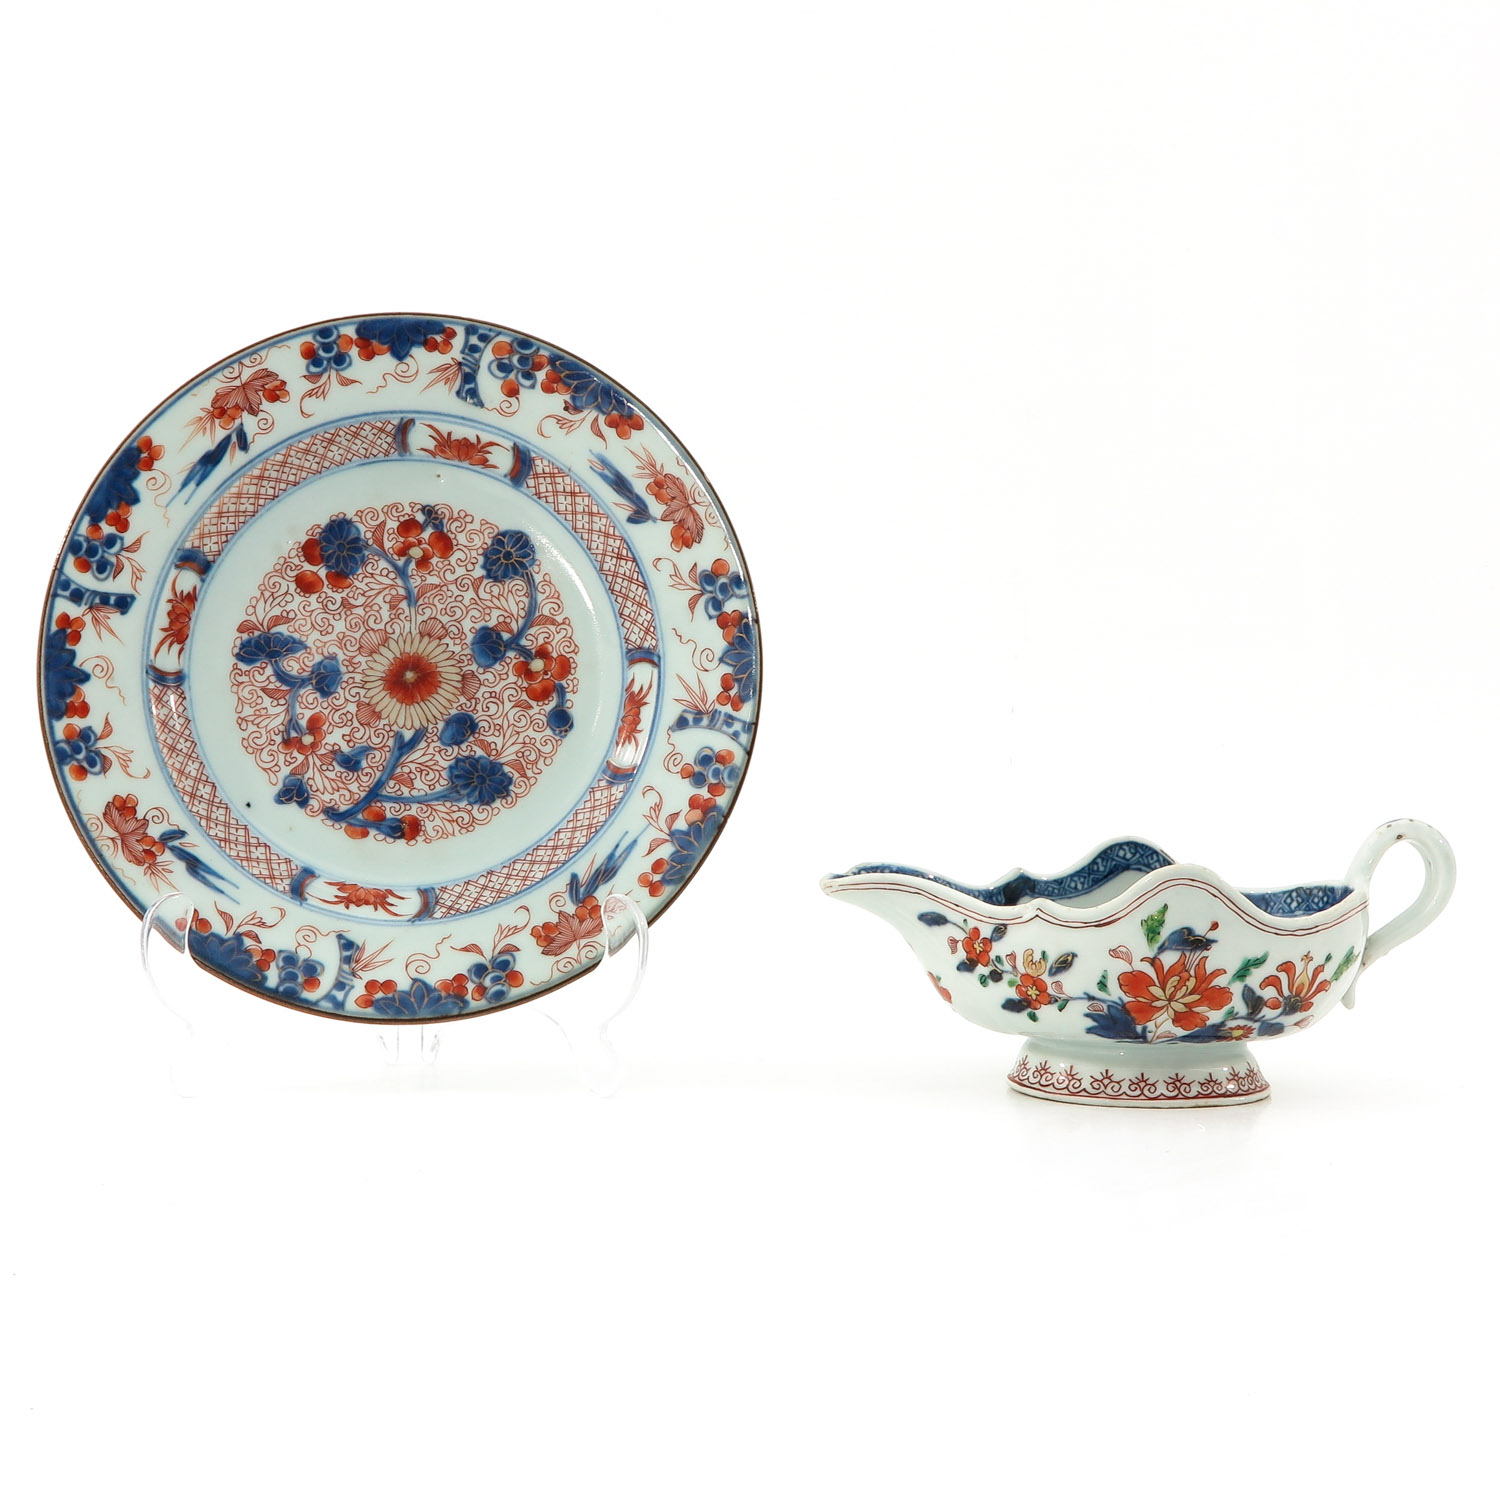 An Imari Plate and Gravy Boat